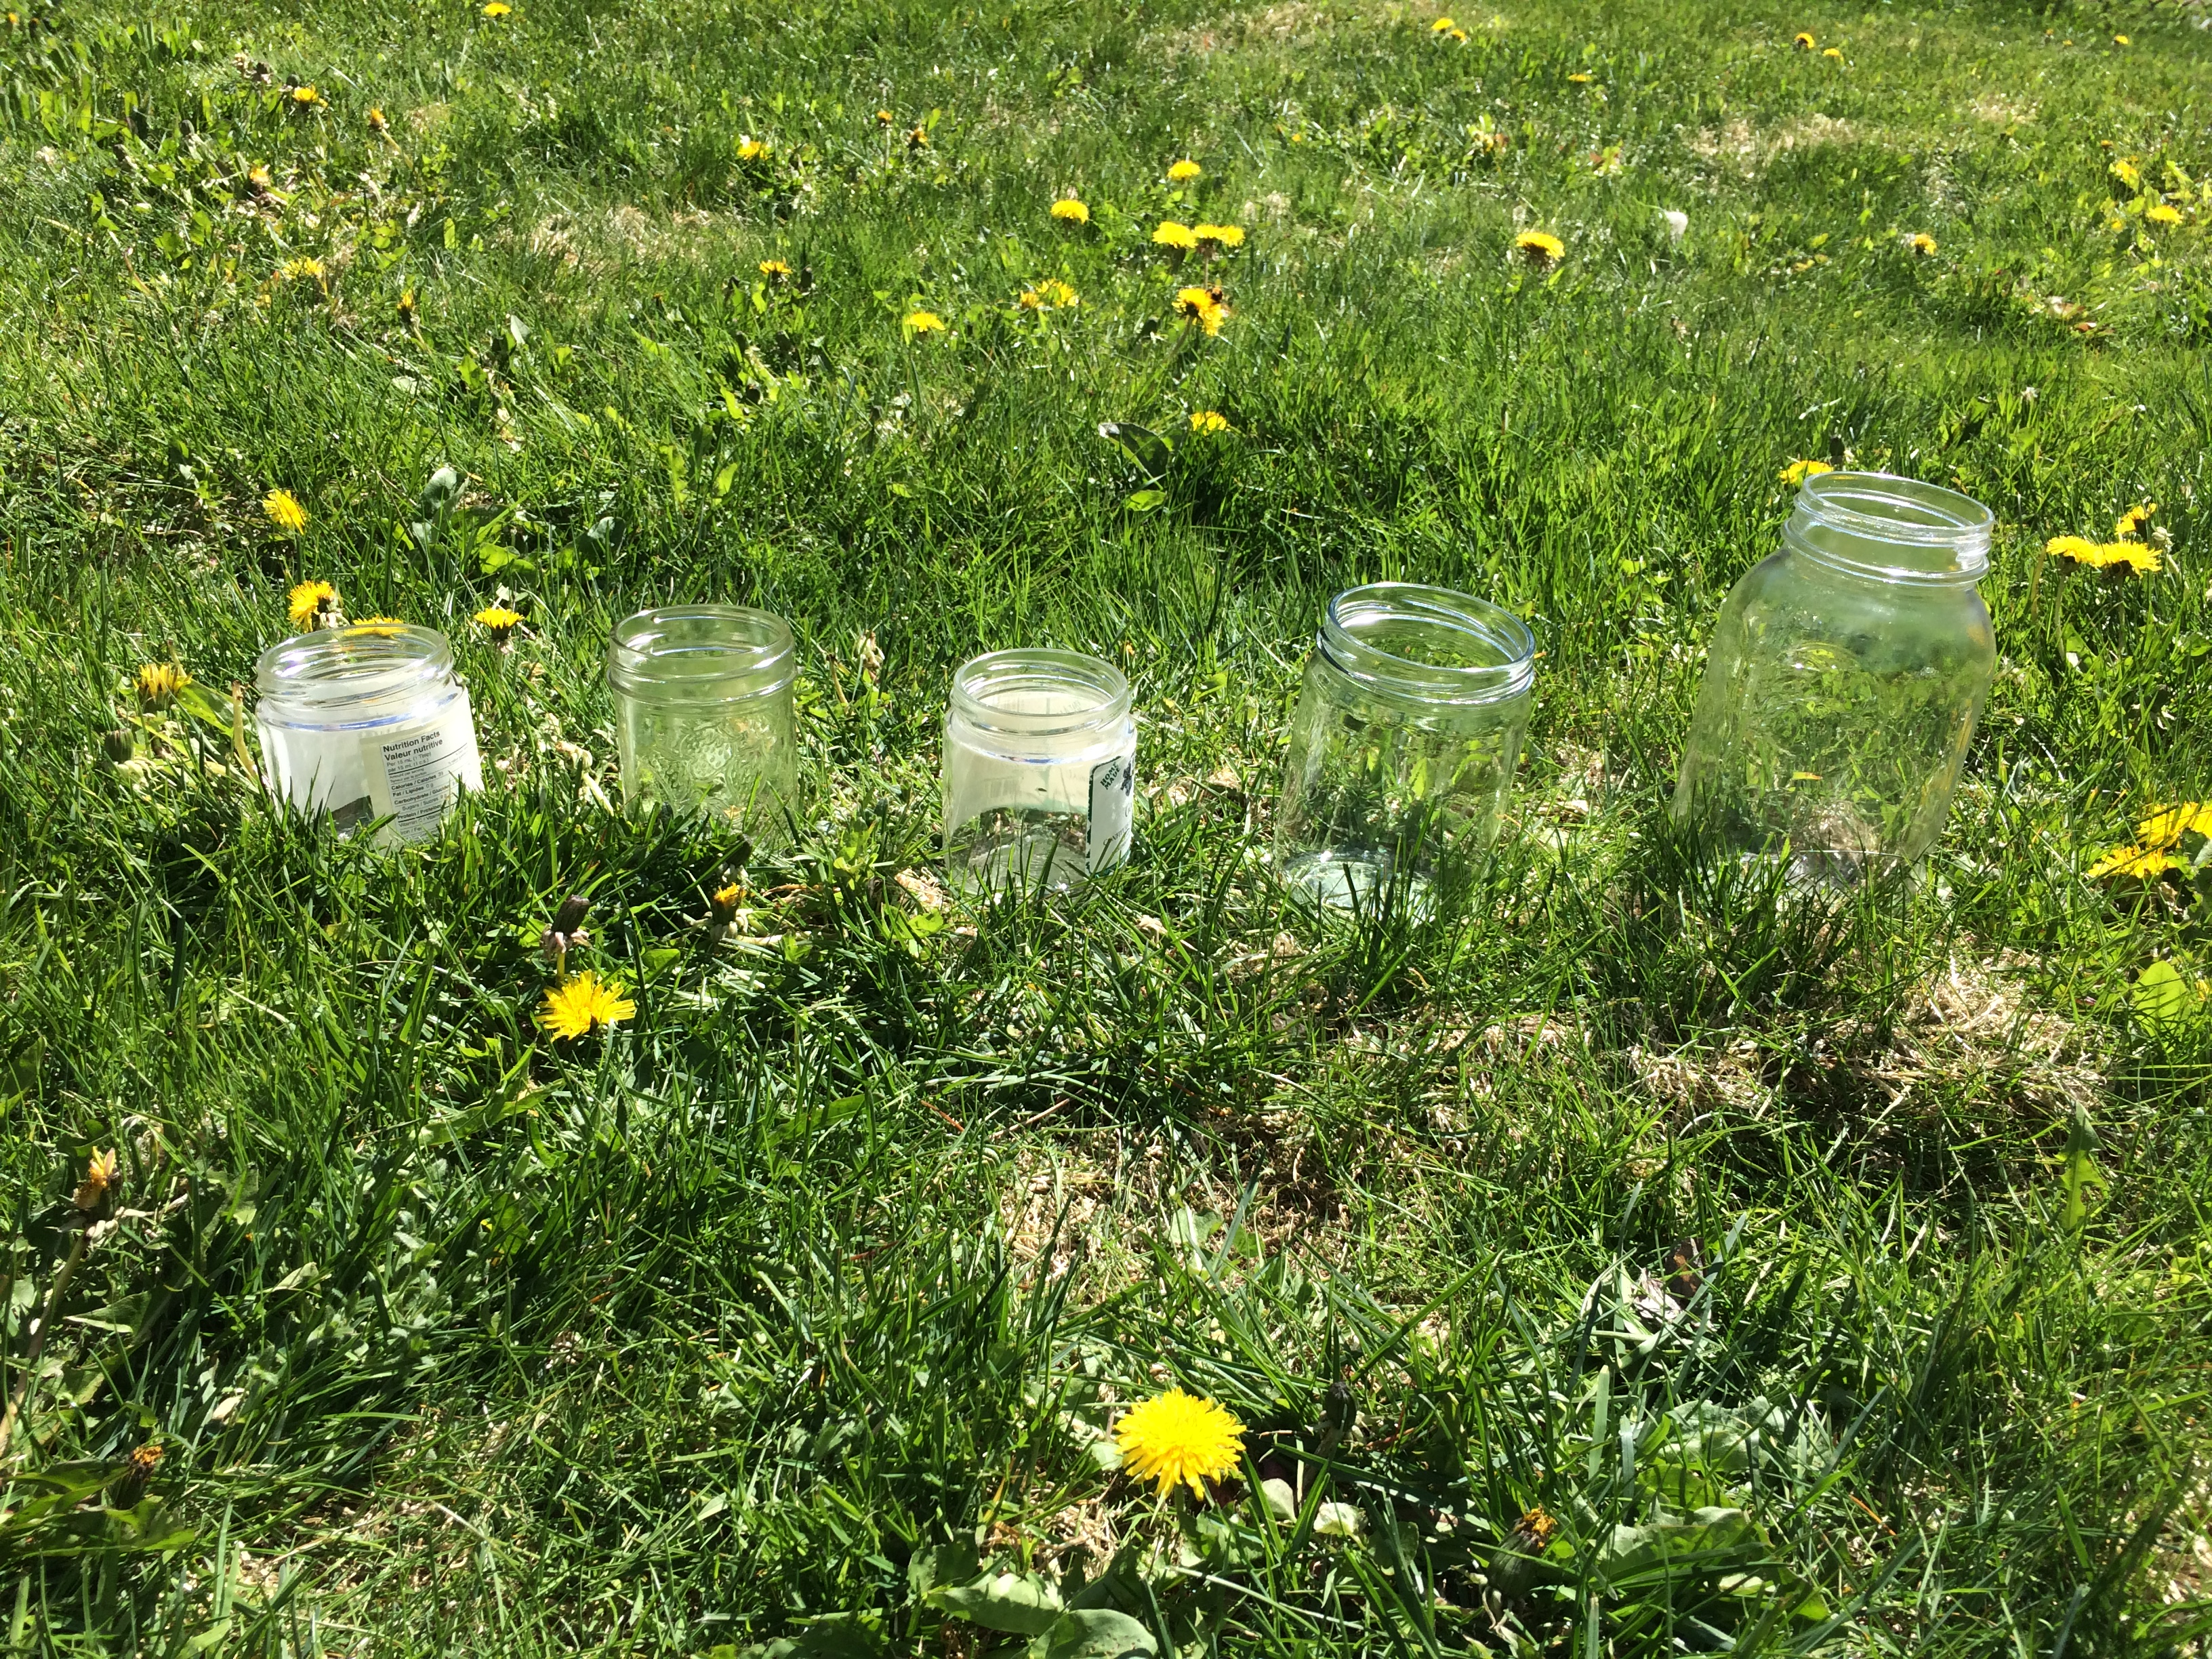 empty glass jars laid out on grass